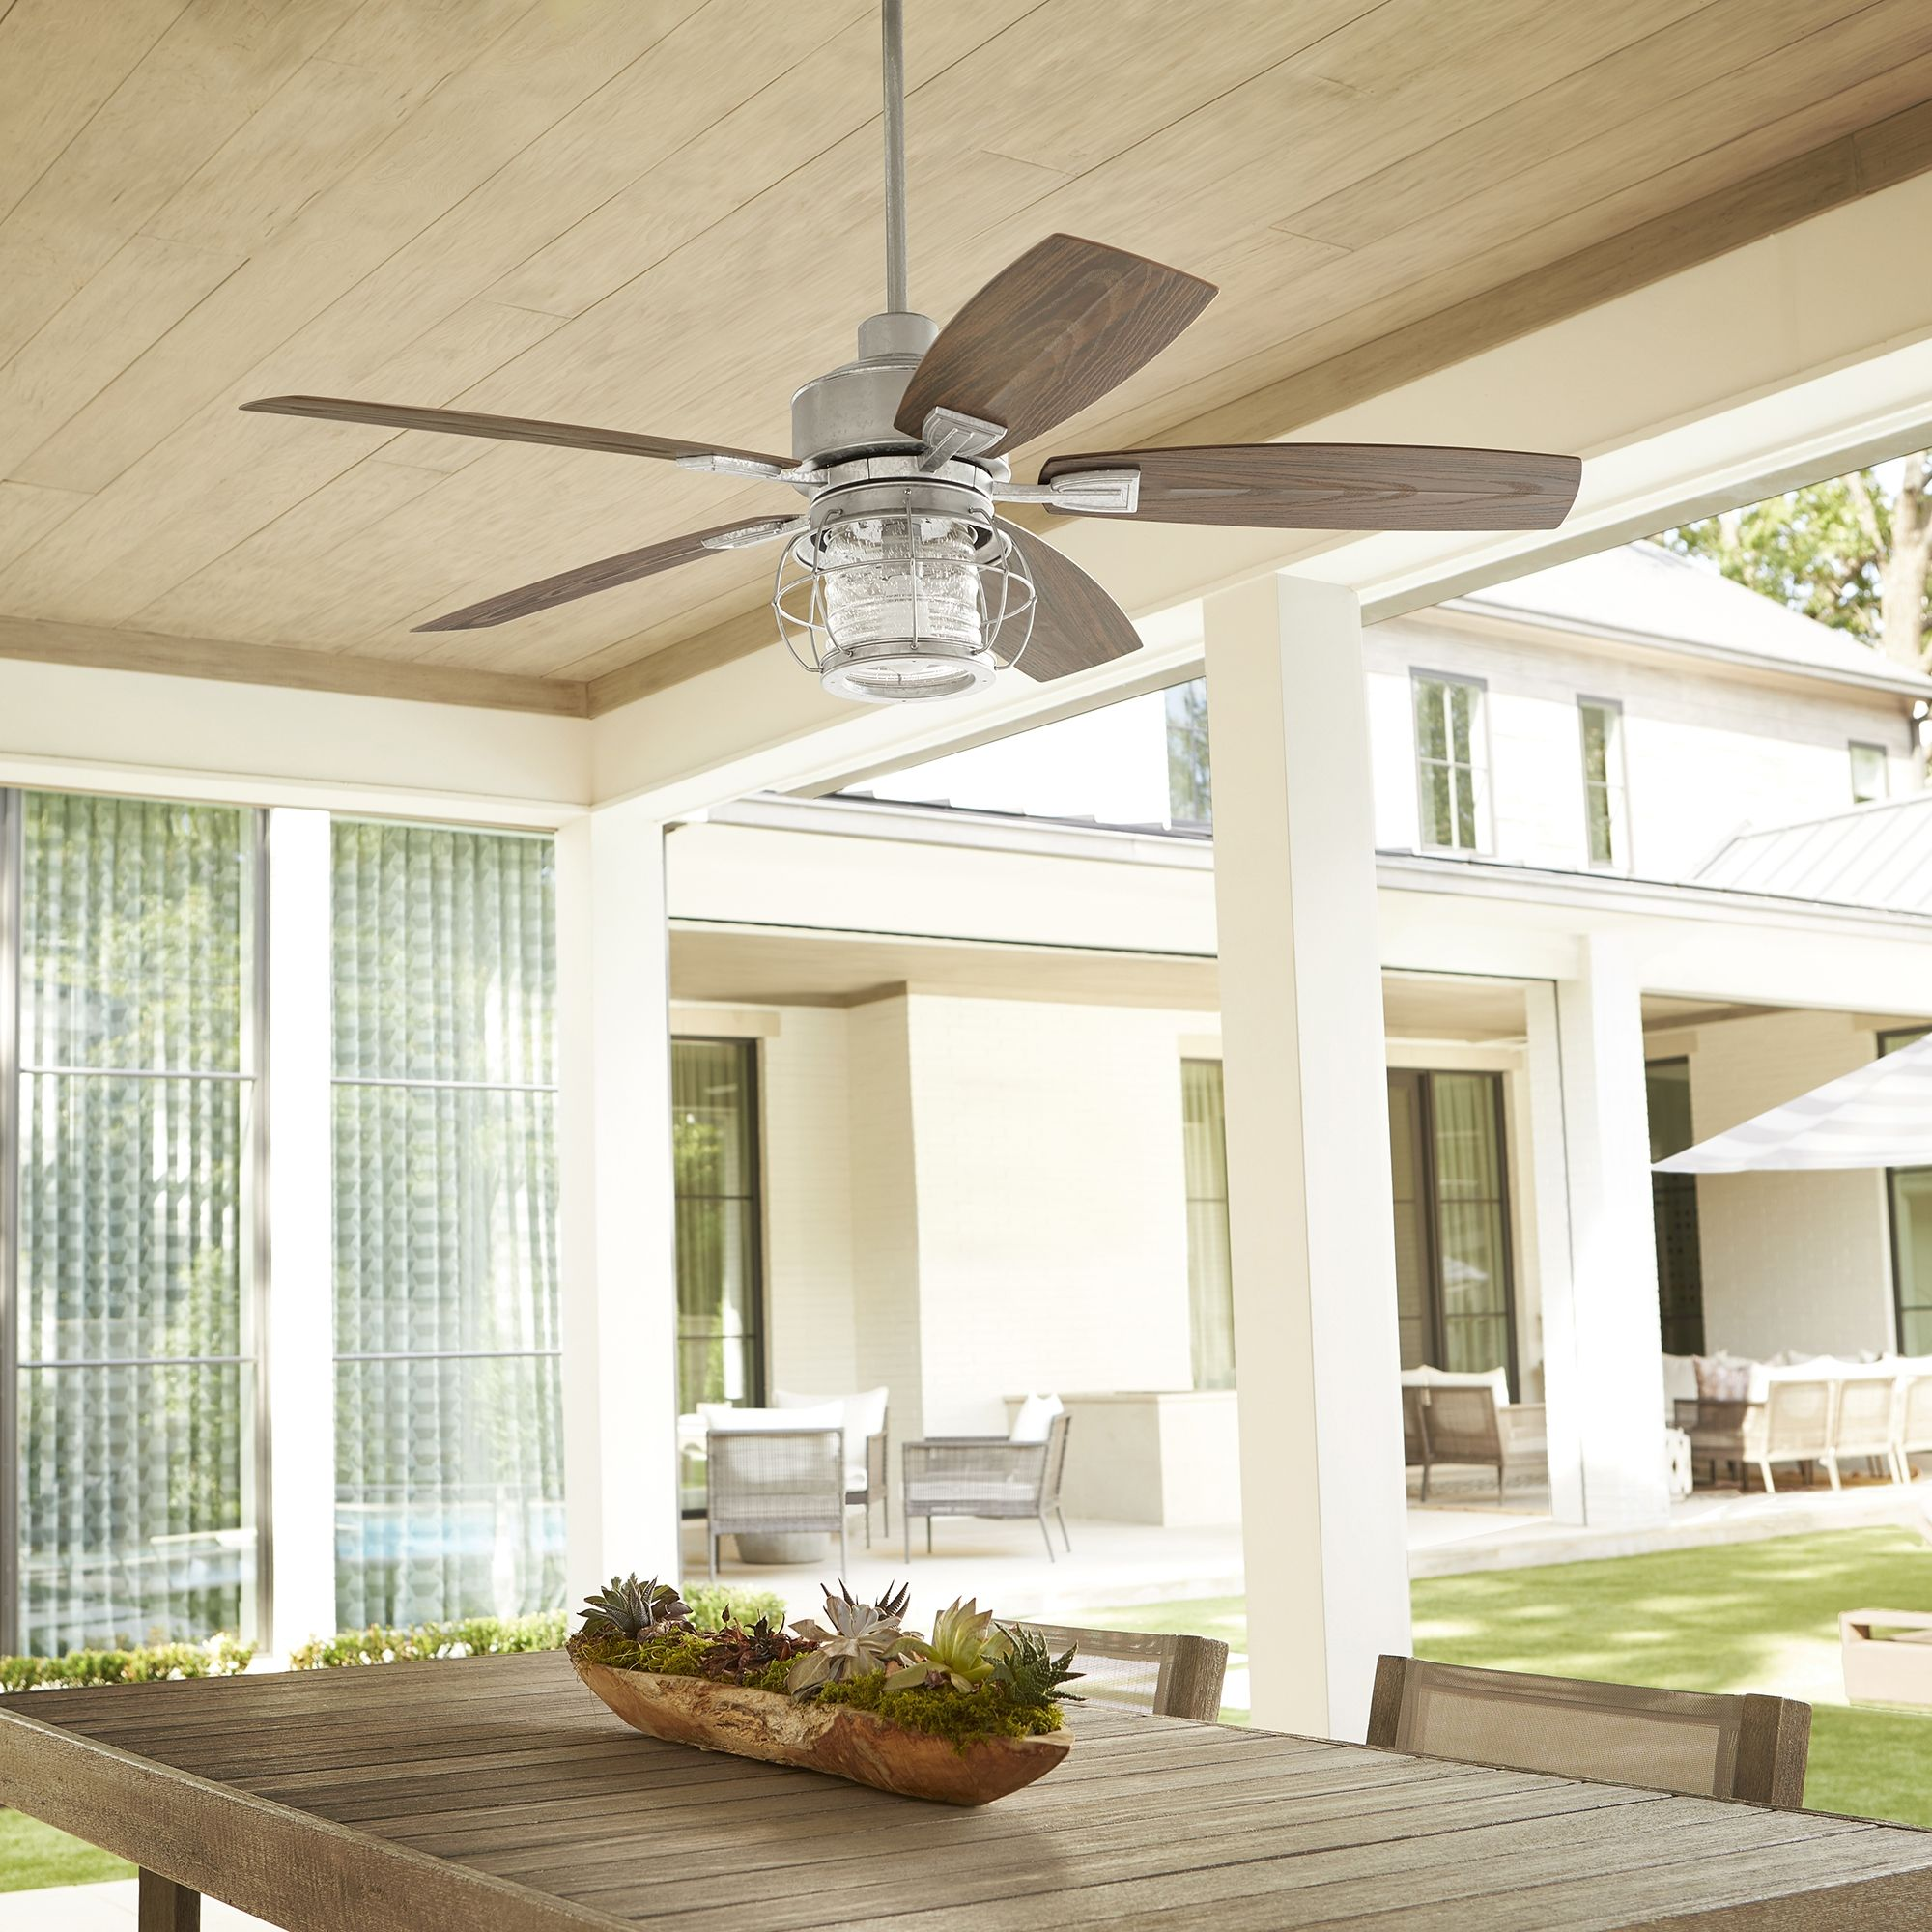 Quorum Galveston 52 Ceiling Fan Outdoor Ceiling Fans Exterior